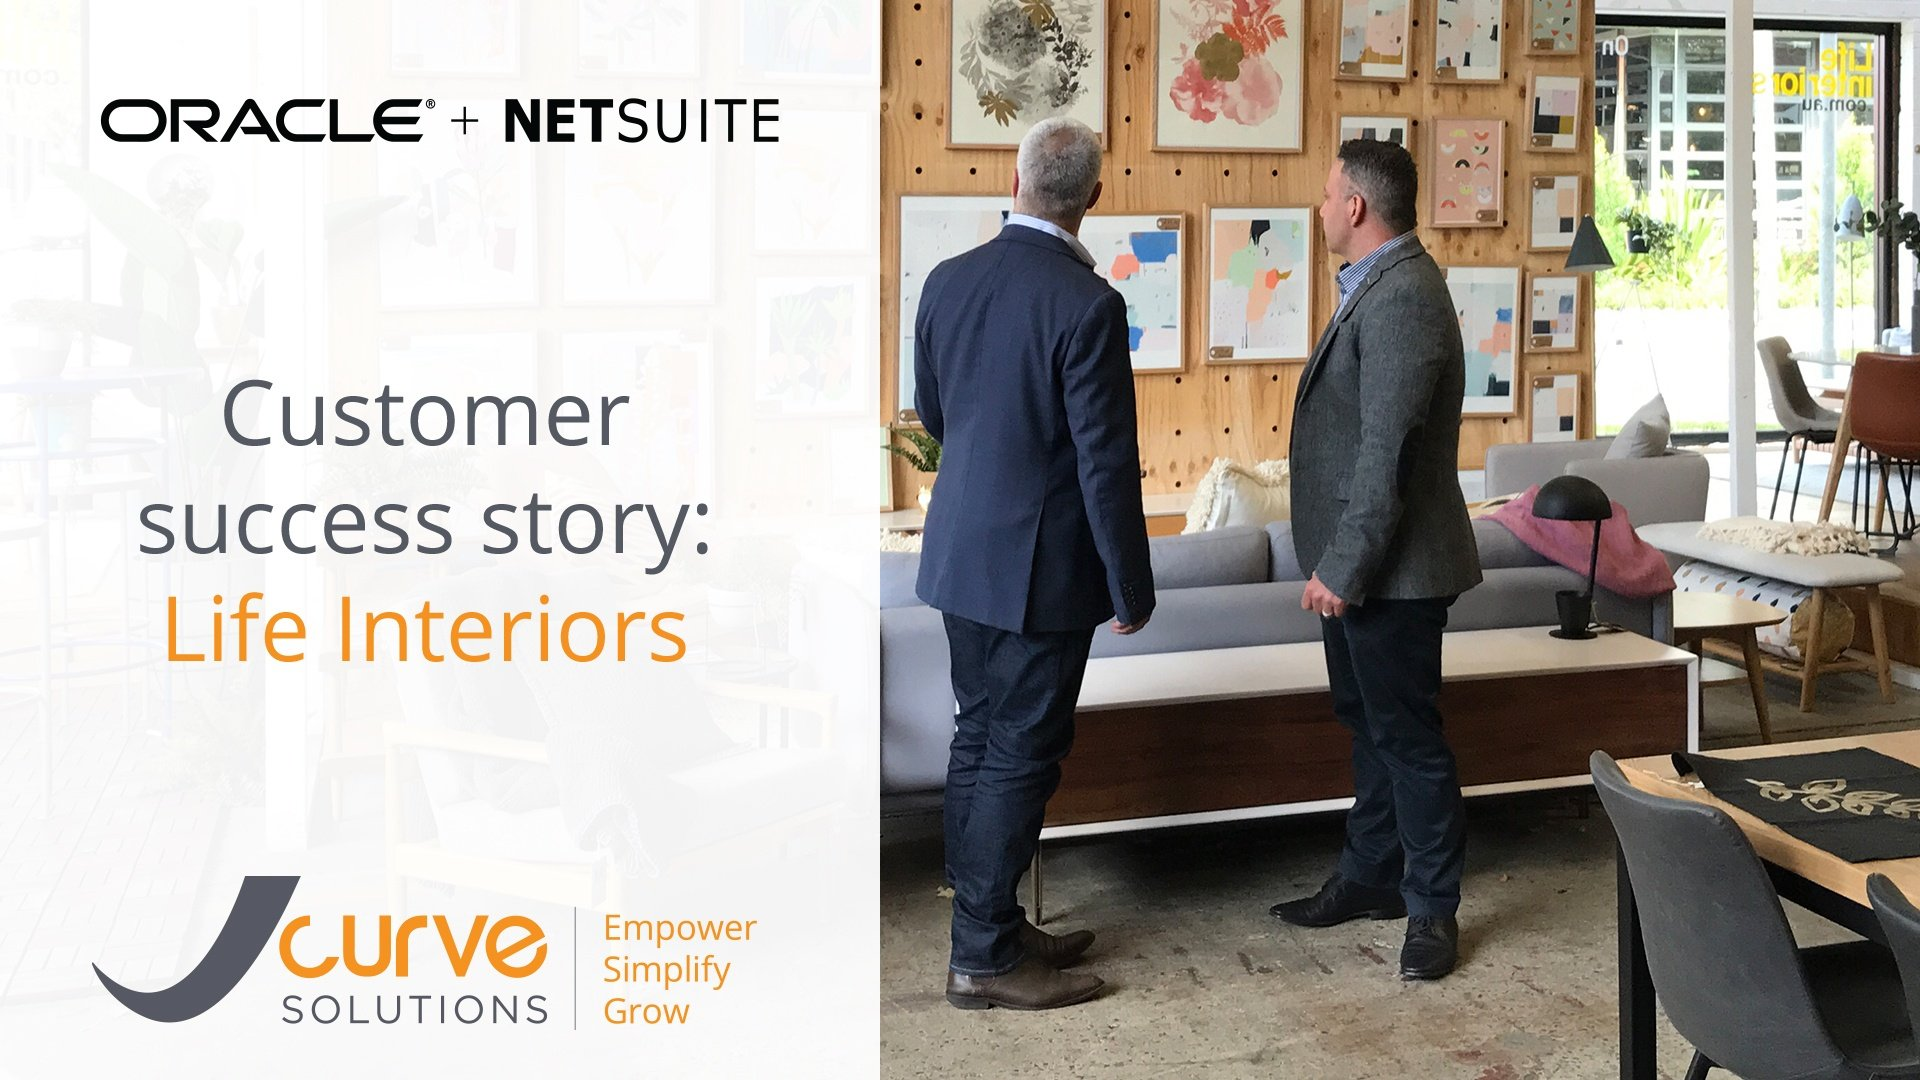 Life Interiors' Story on Seeing Success with Small Business Software